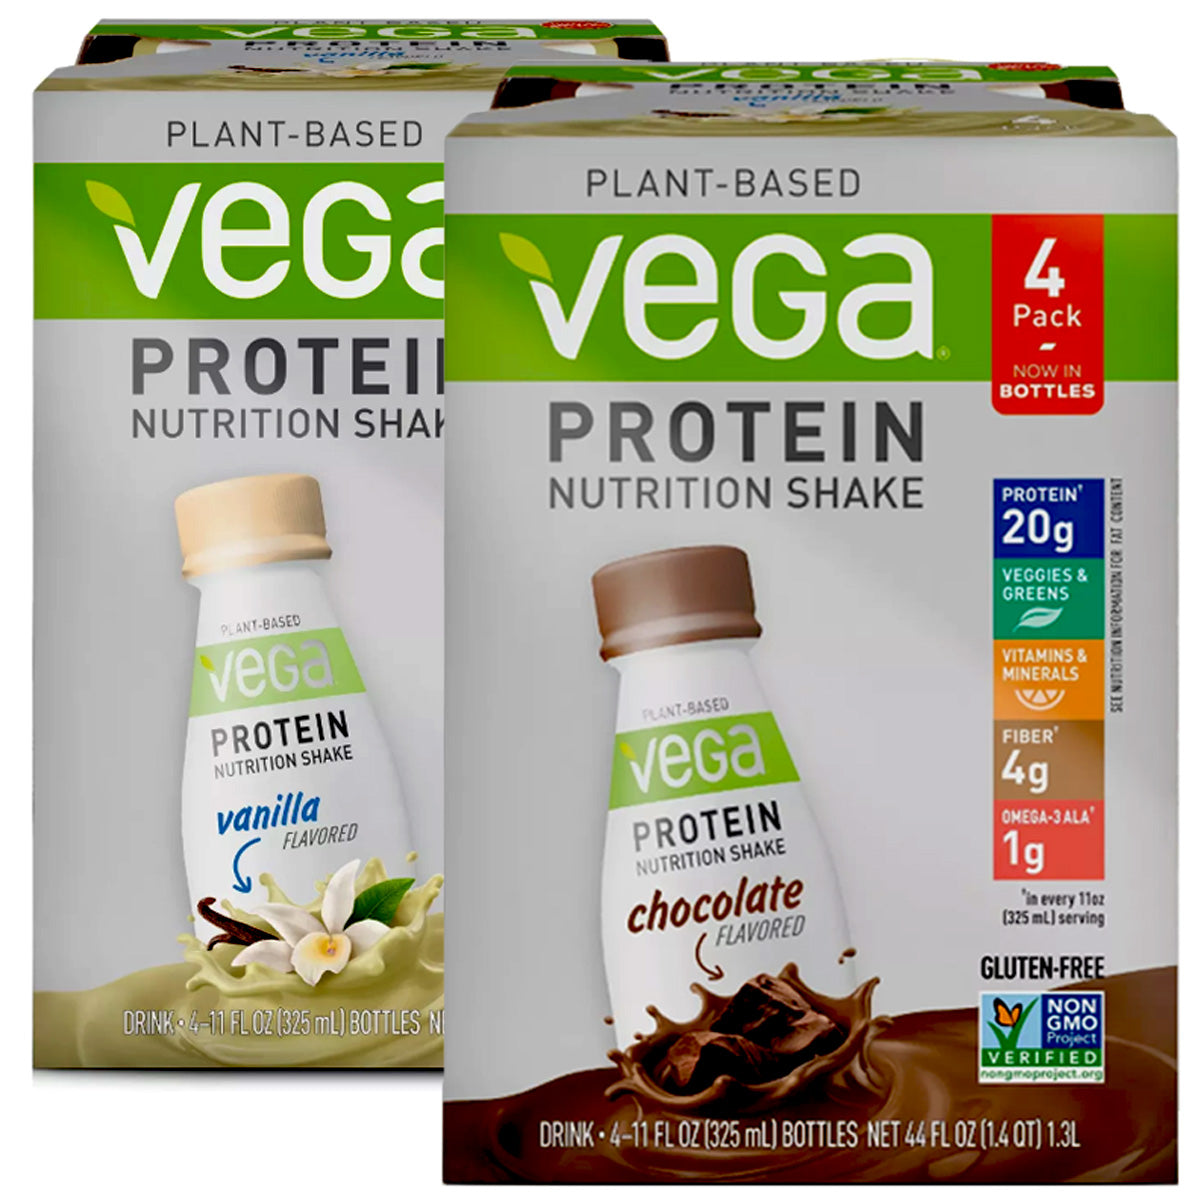 Plant Based Vega Protein Vegan Nutritional Shake Chocolate & Vanilla Bundle - 2 ct.